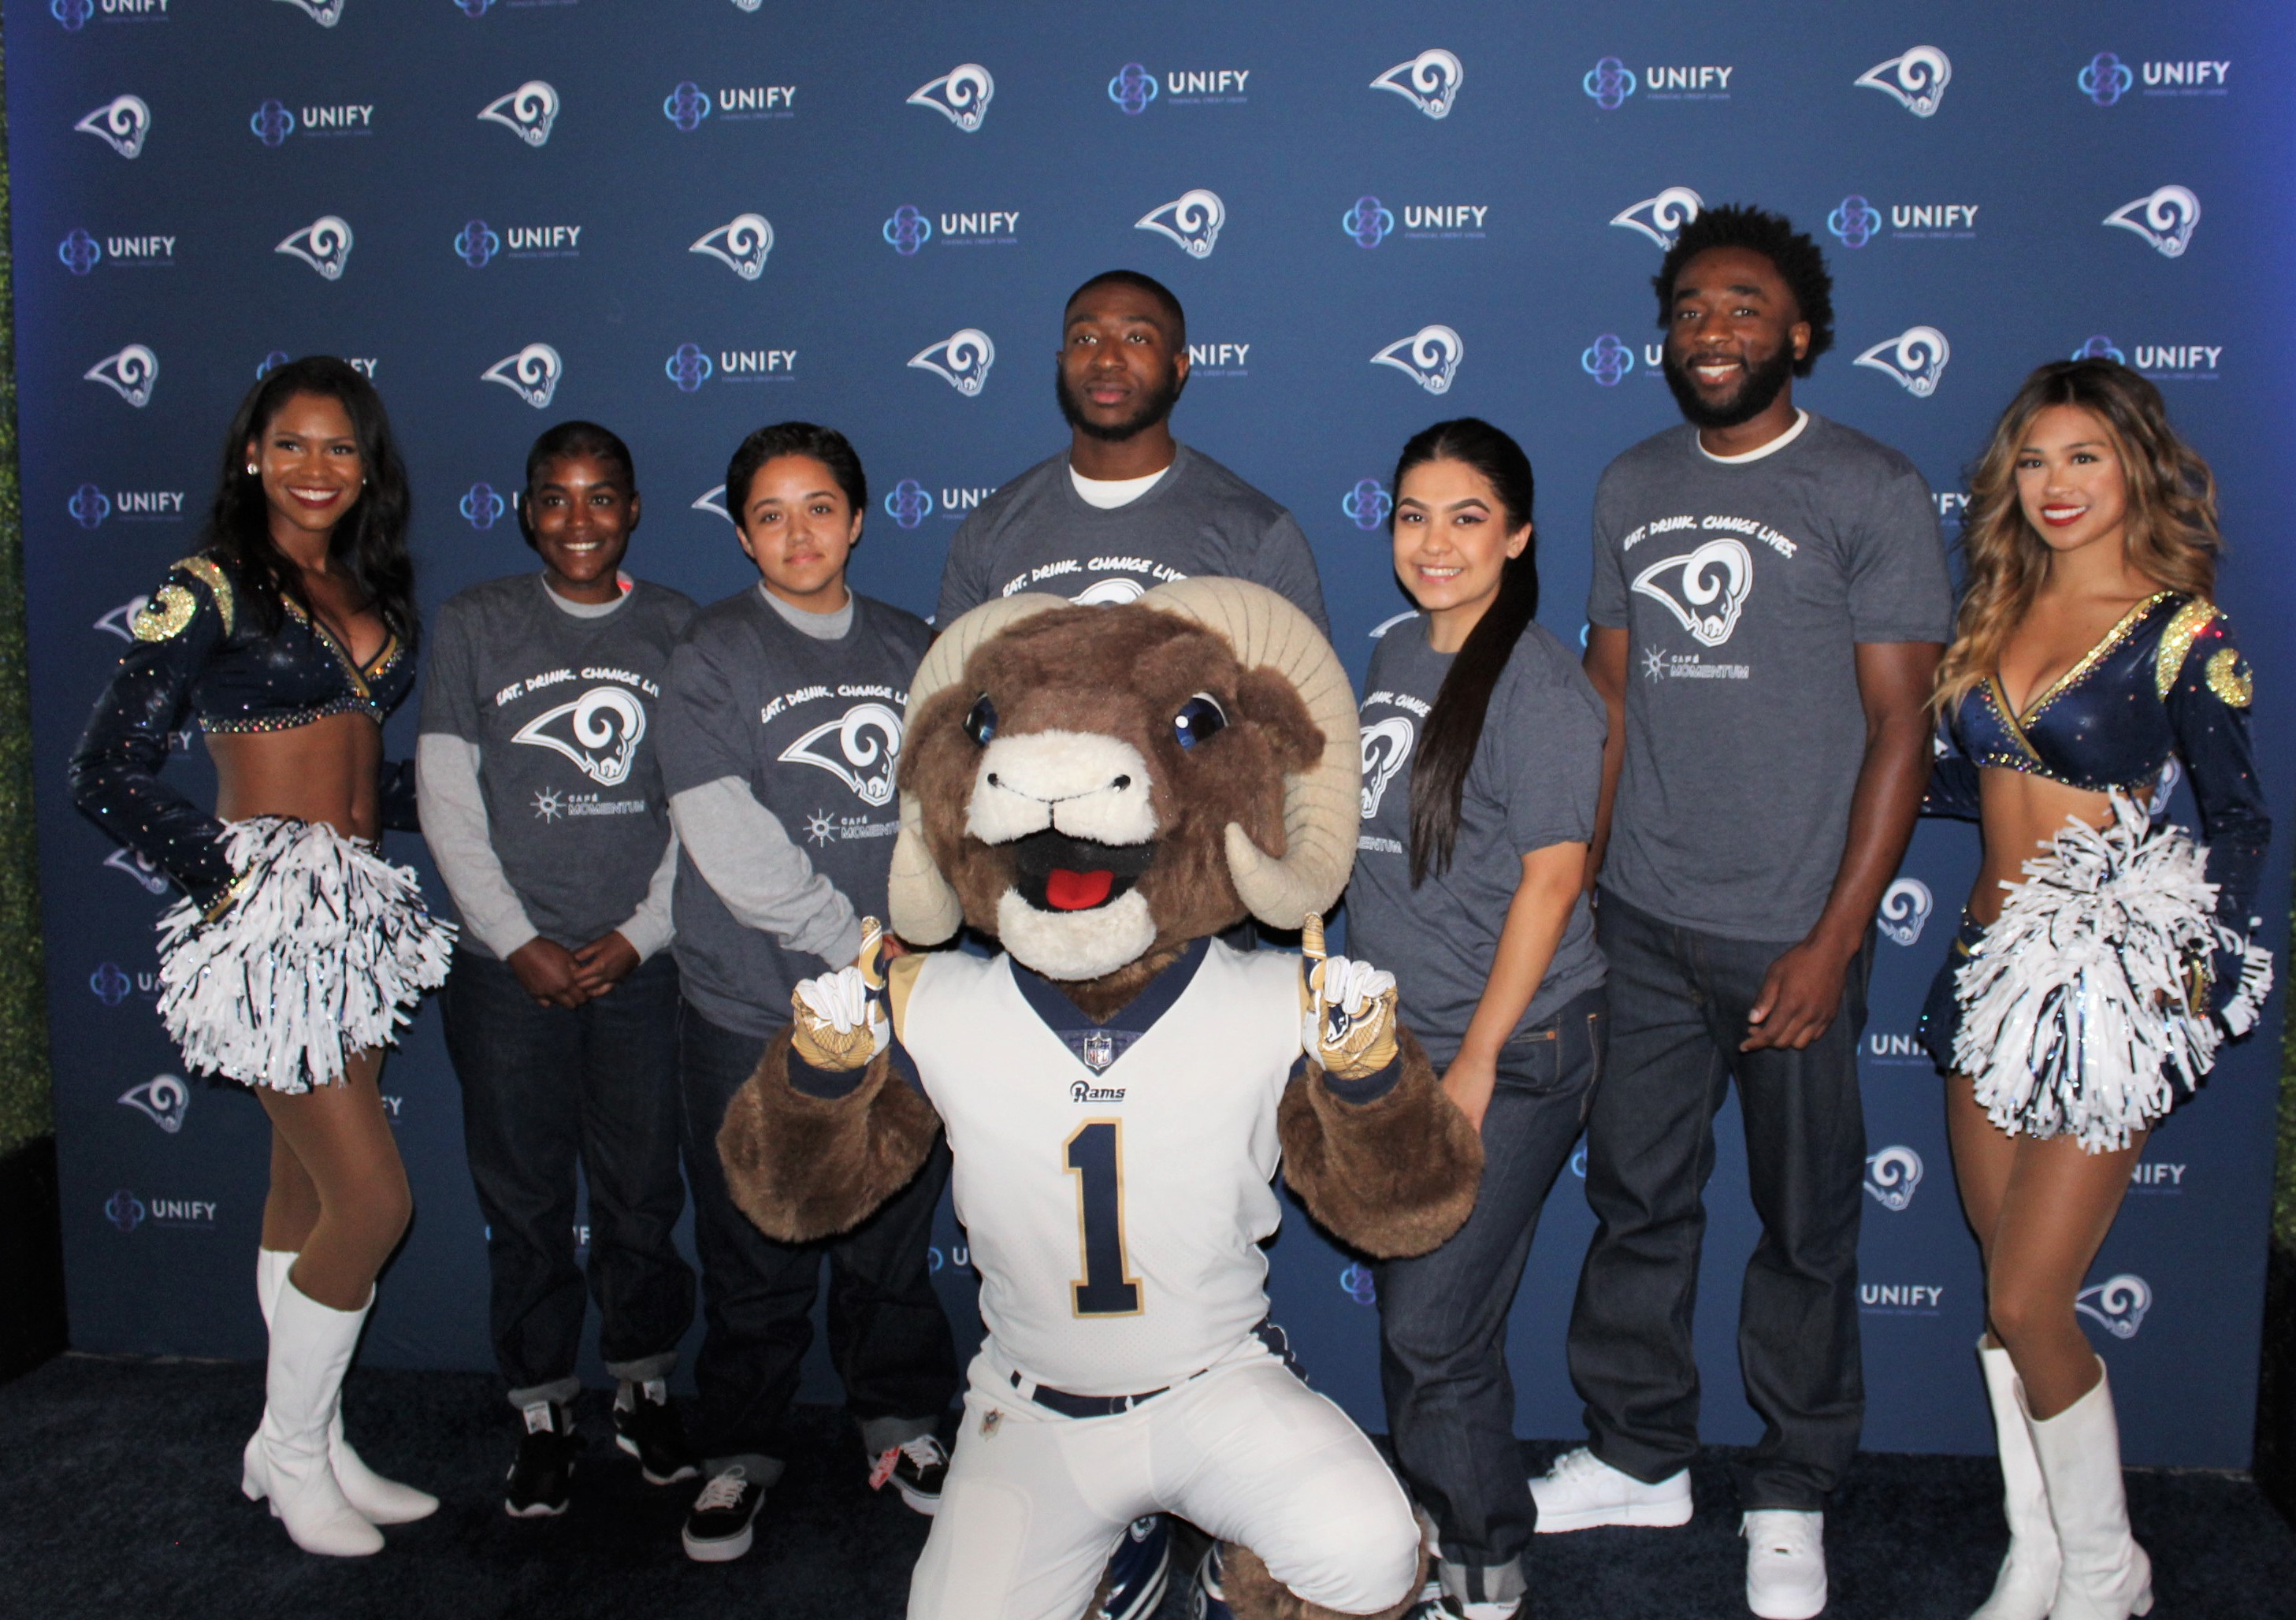 Football team mascot and two cheerleaders flank five youth.